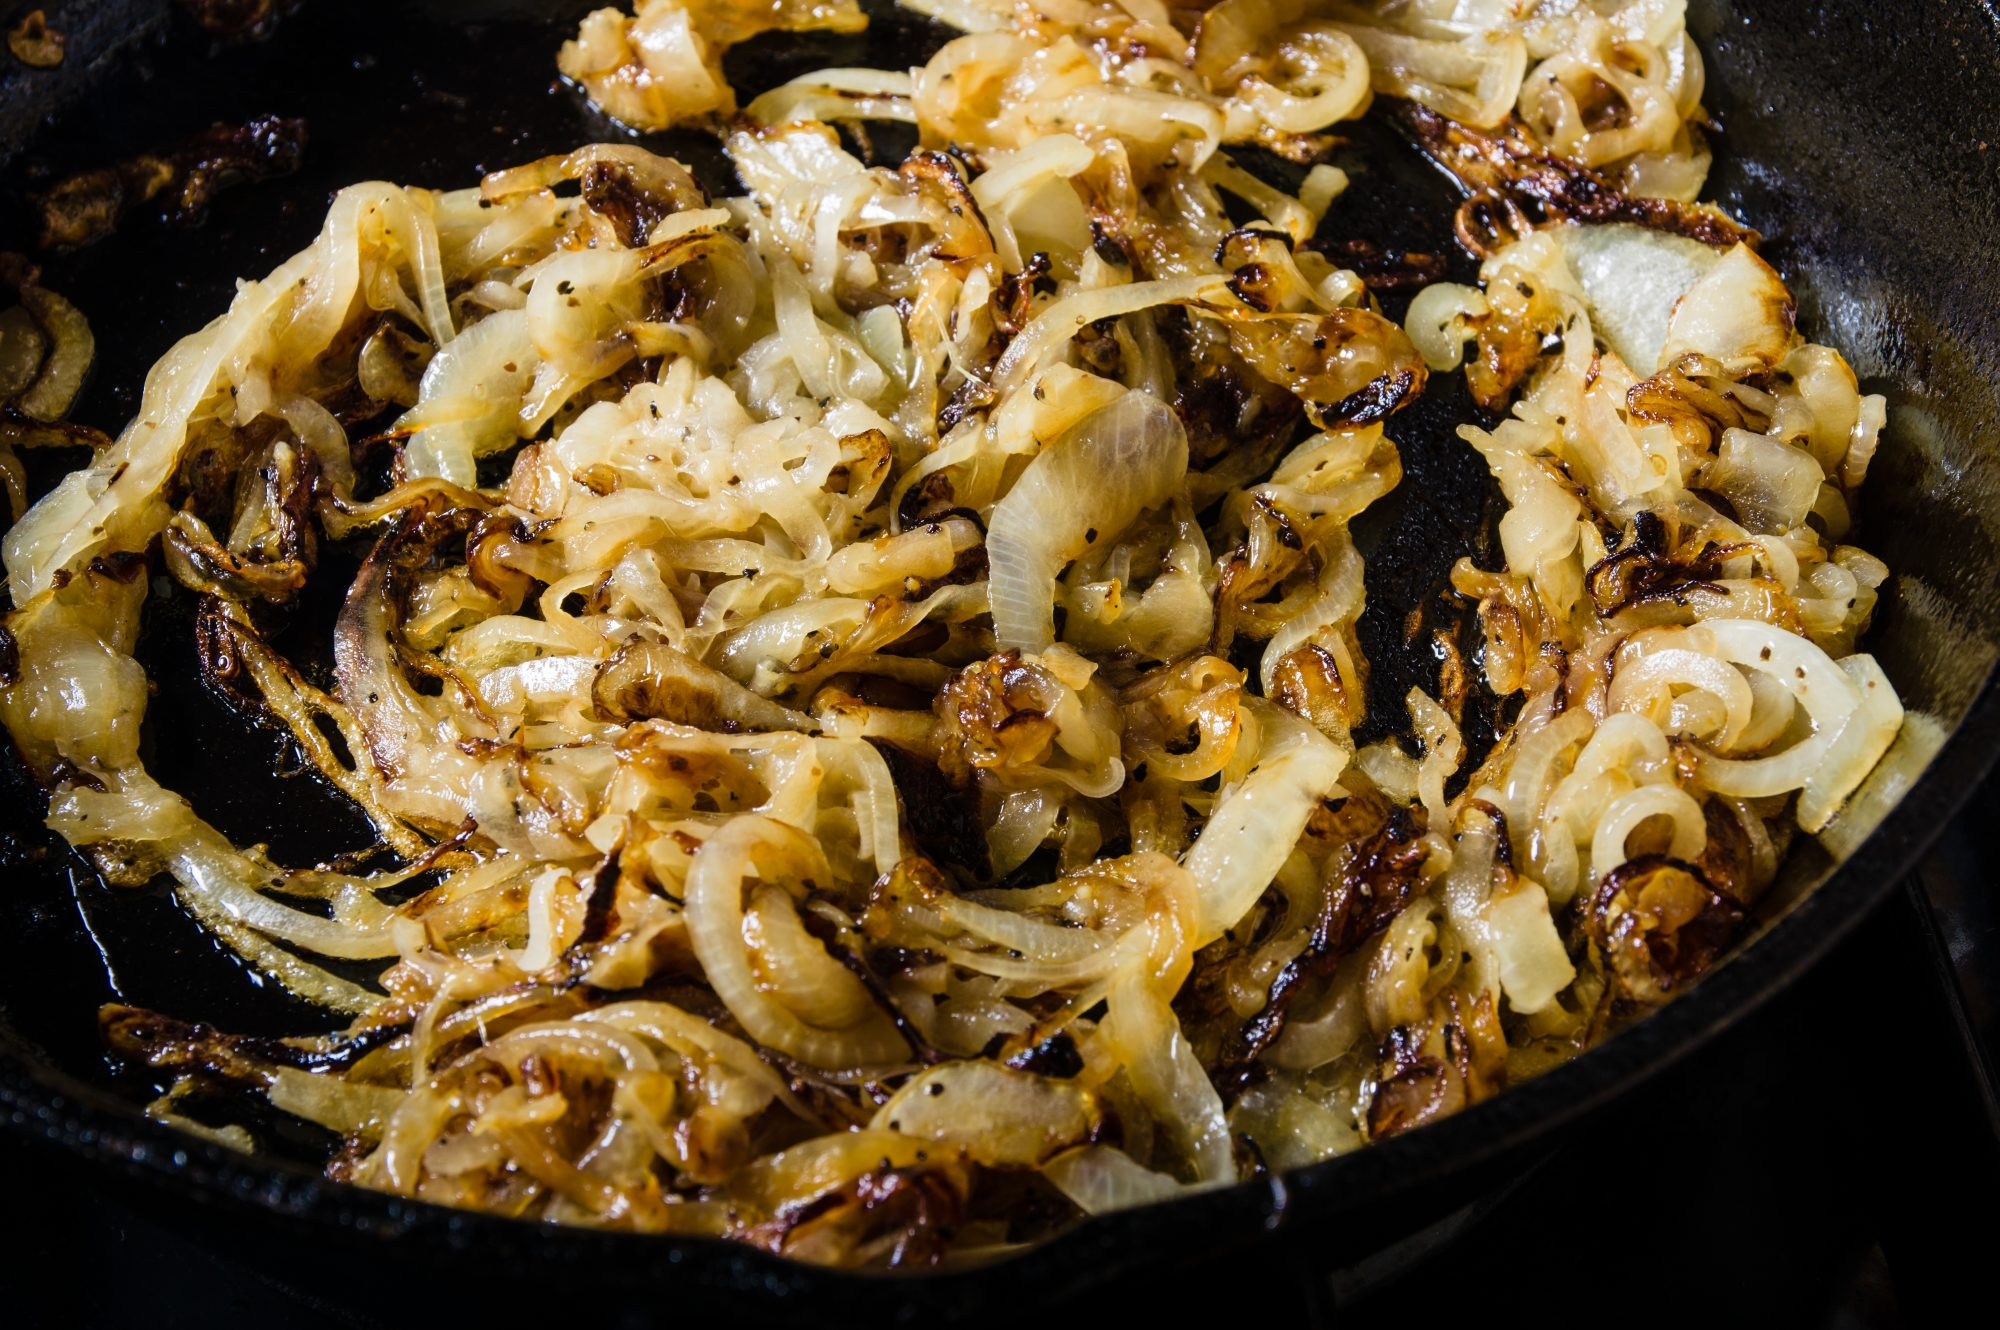 What's Going Wrong With Your Caramelized Onions